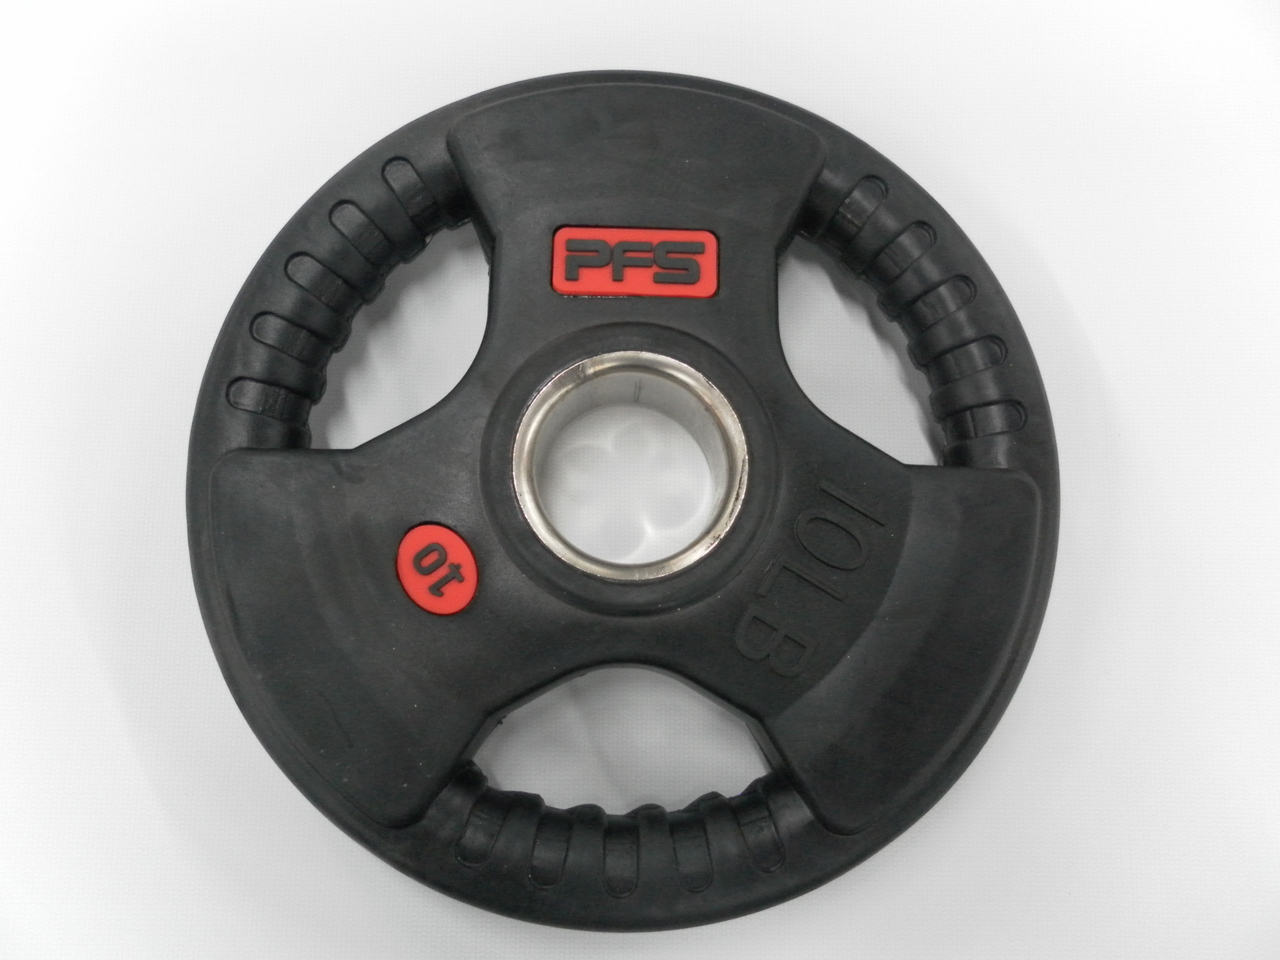 PFS 10lb Rubber Tri Grip Olympic Plate